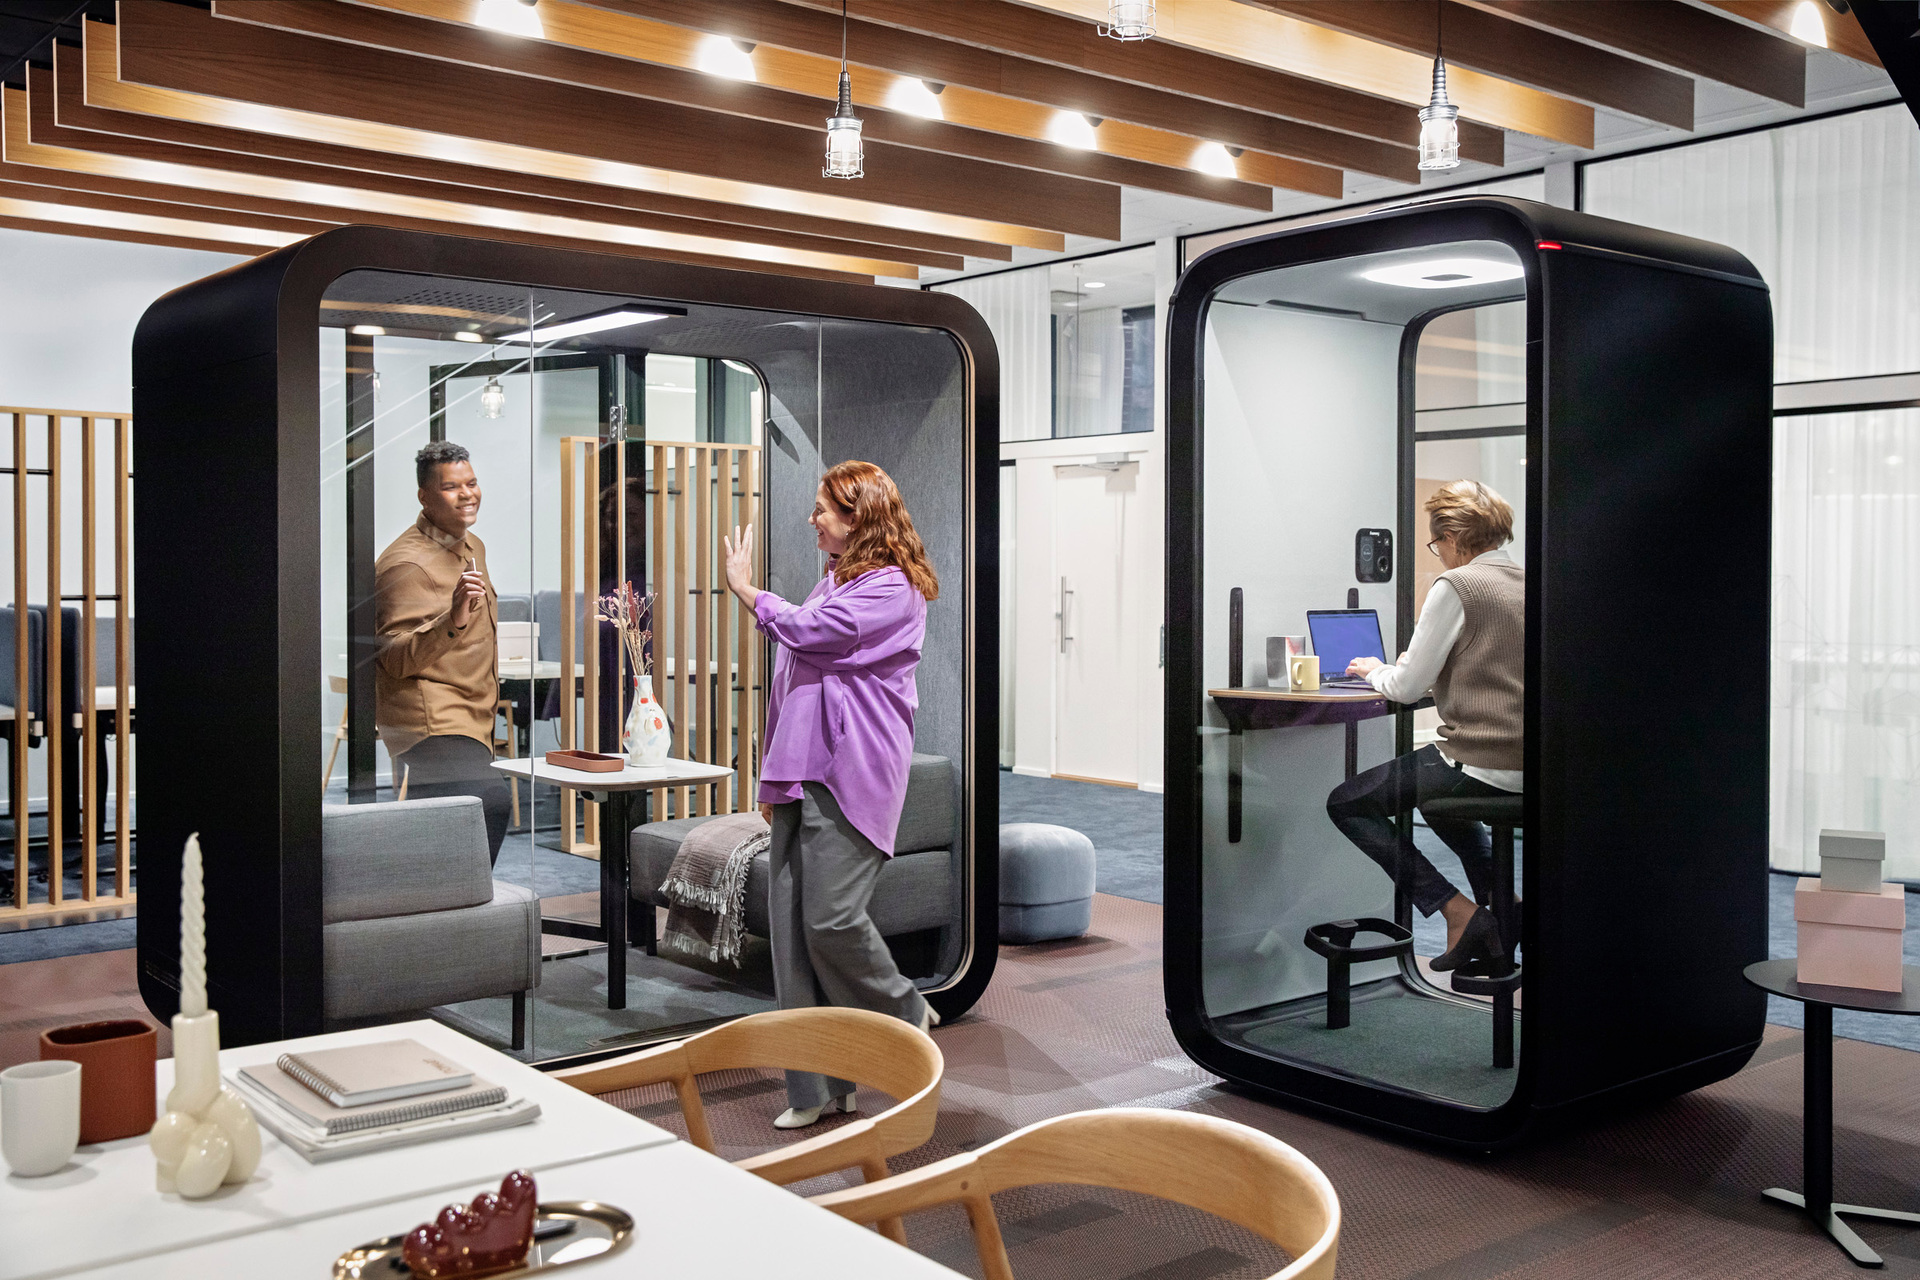 Looking for a small office phone booth for important phone calls? Or maybe a bigger pod for team working and co-creating? Framery allows you to design yours to suit your needs from a wide range of useful accessories, fashionable colors and flexible interior options. Choose what you like, and we'll make it happen.